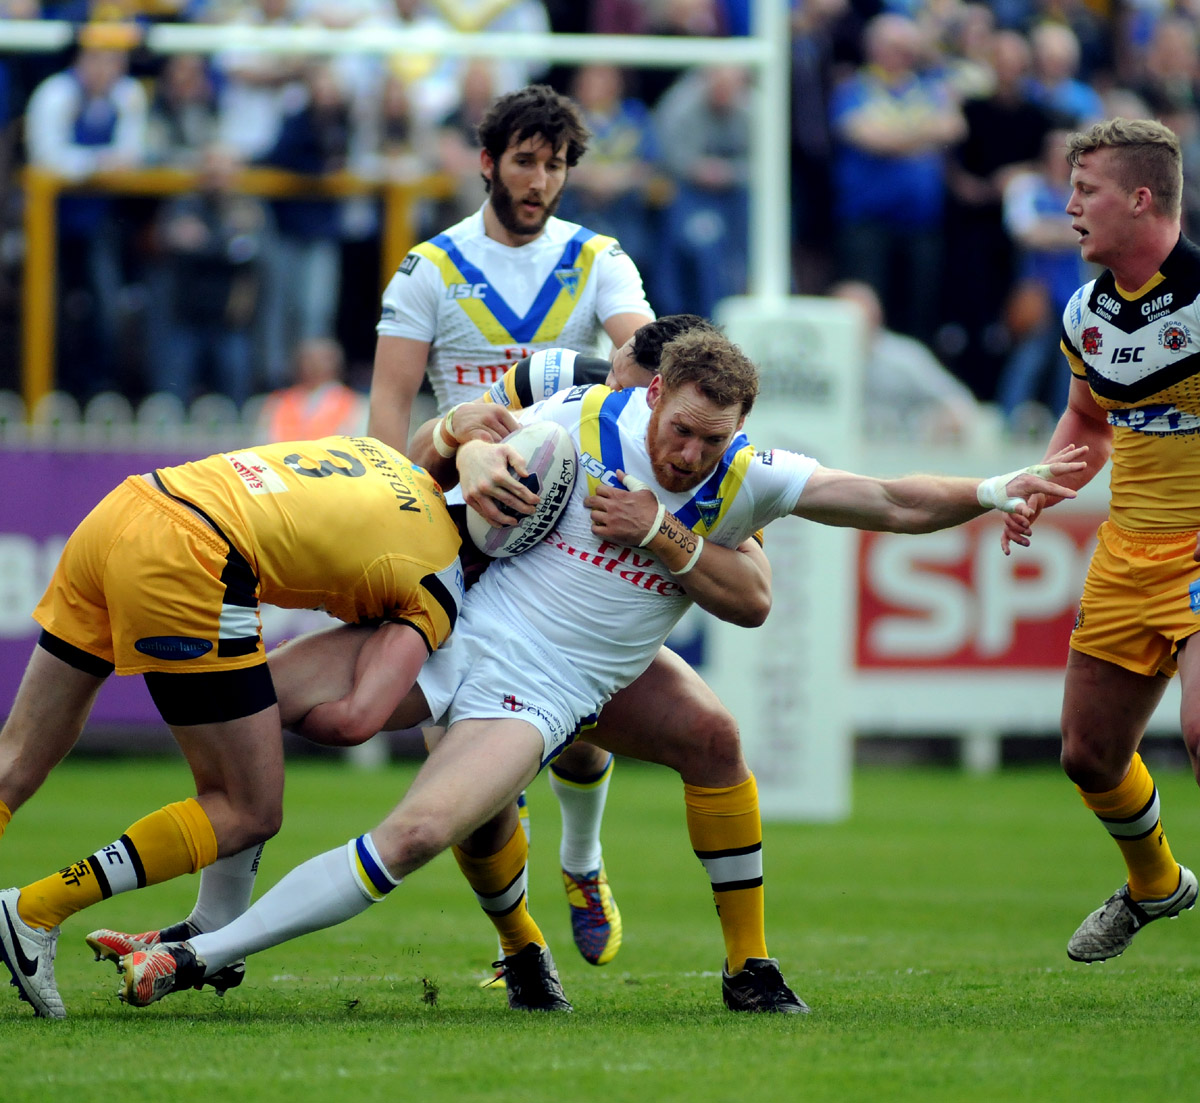 FULL TIME, PICTURES ADDED: Castleford Tigers 40 Warrington Wolves 6